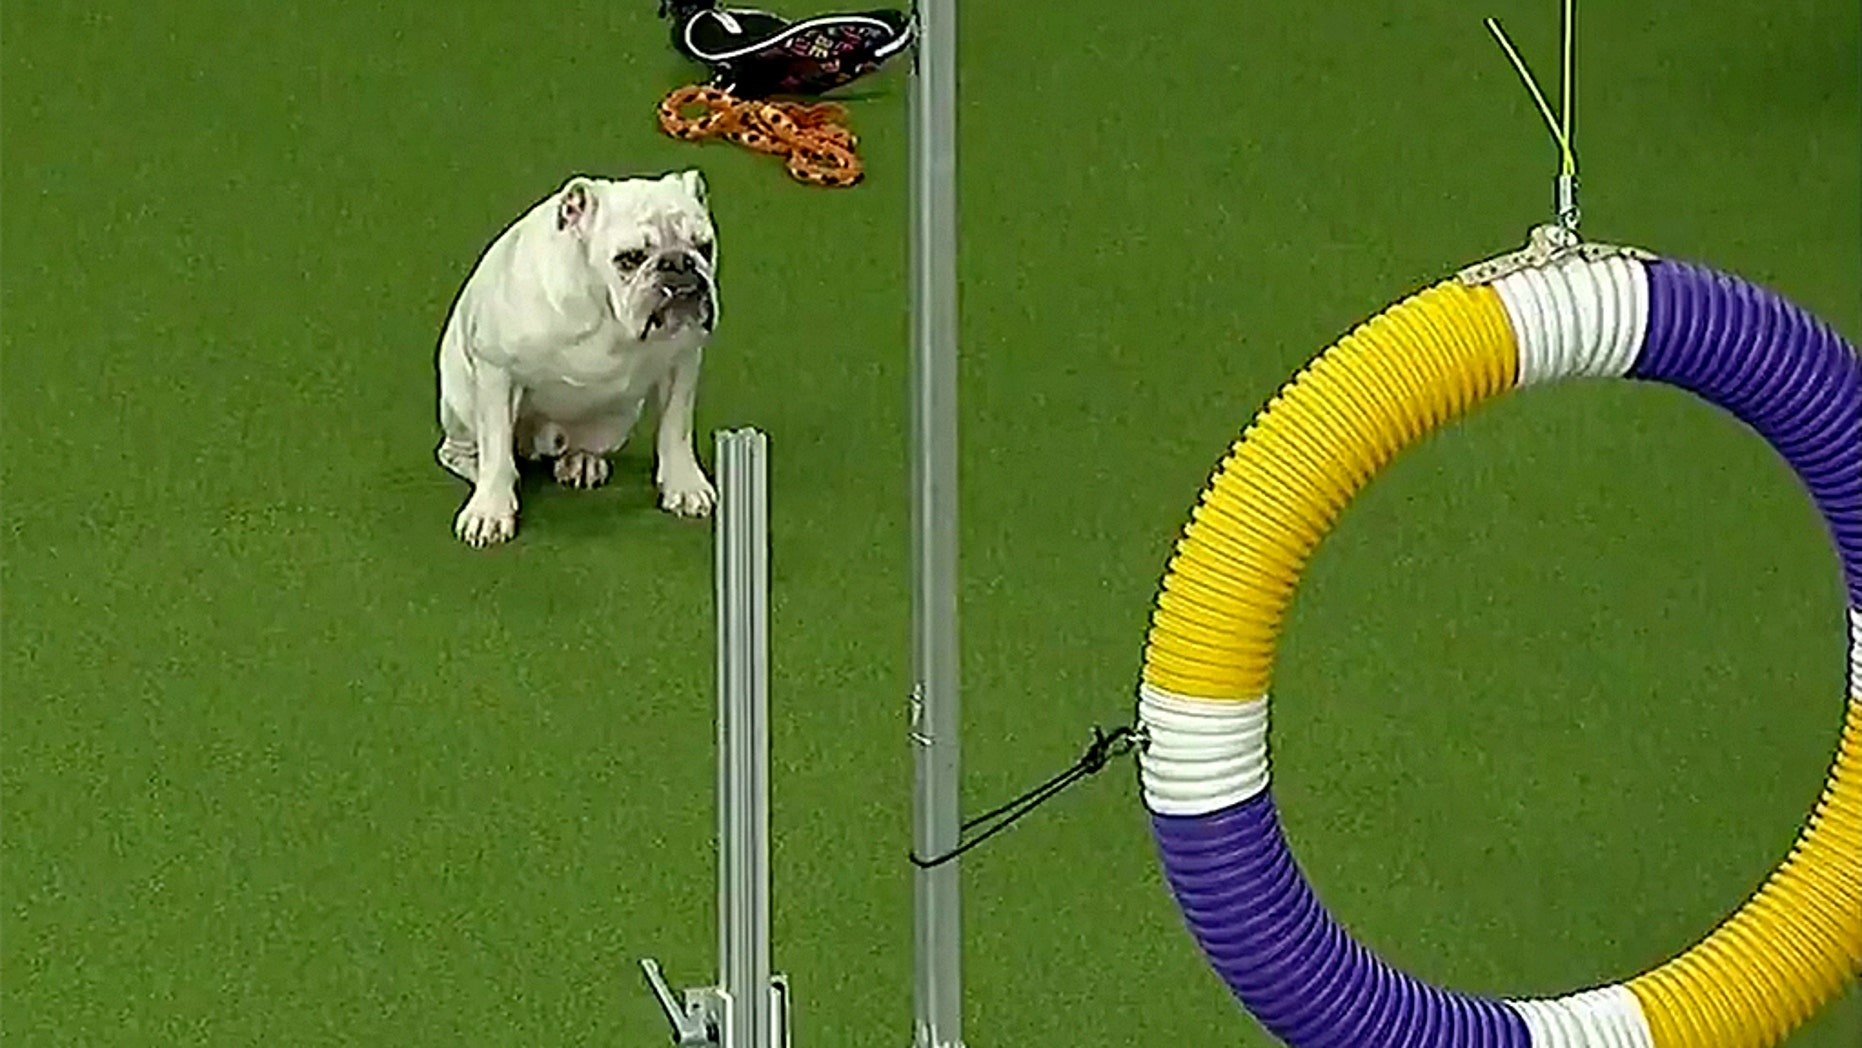 Rudy the bulldog. (Fox Sports)